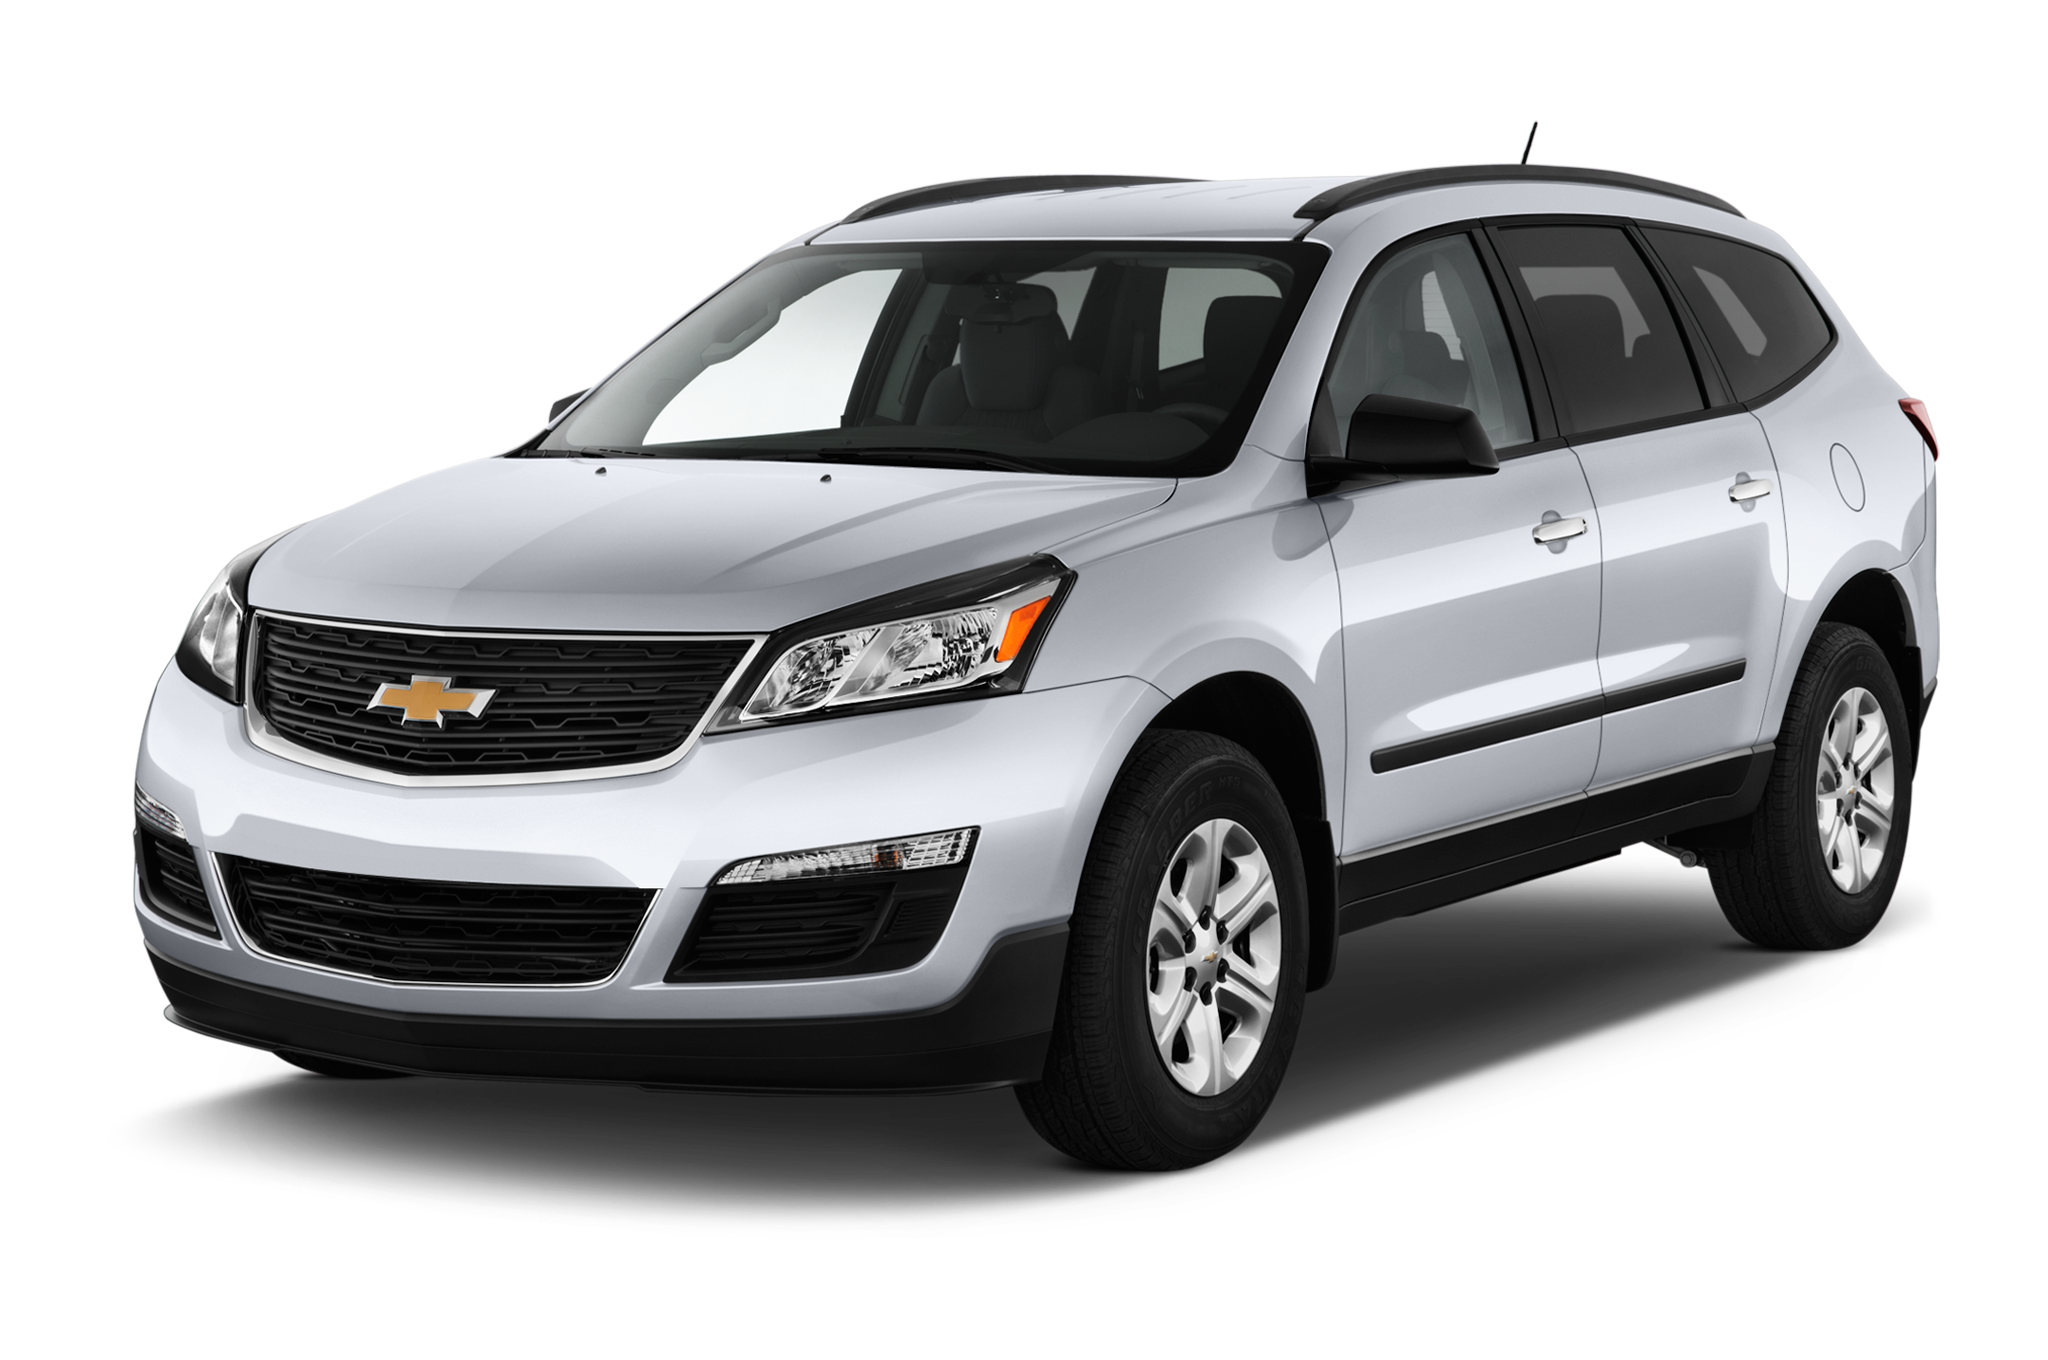 Grab and download Chevrolet High Quality PNG